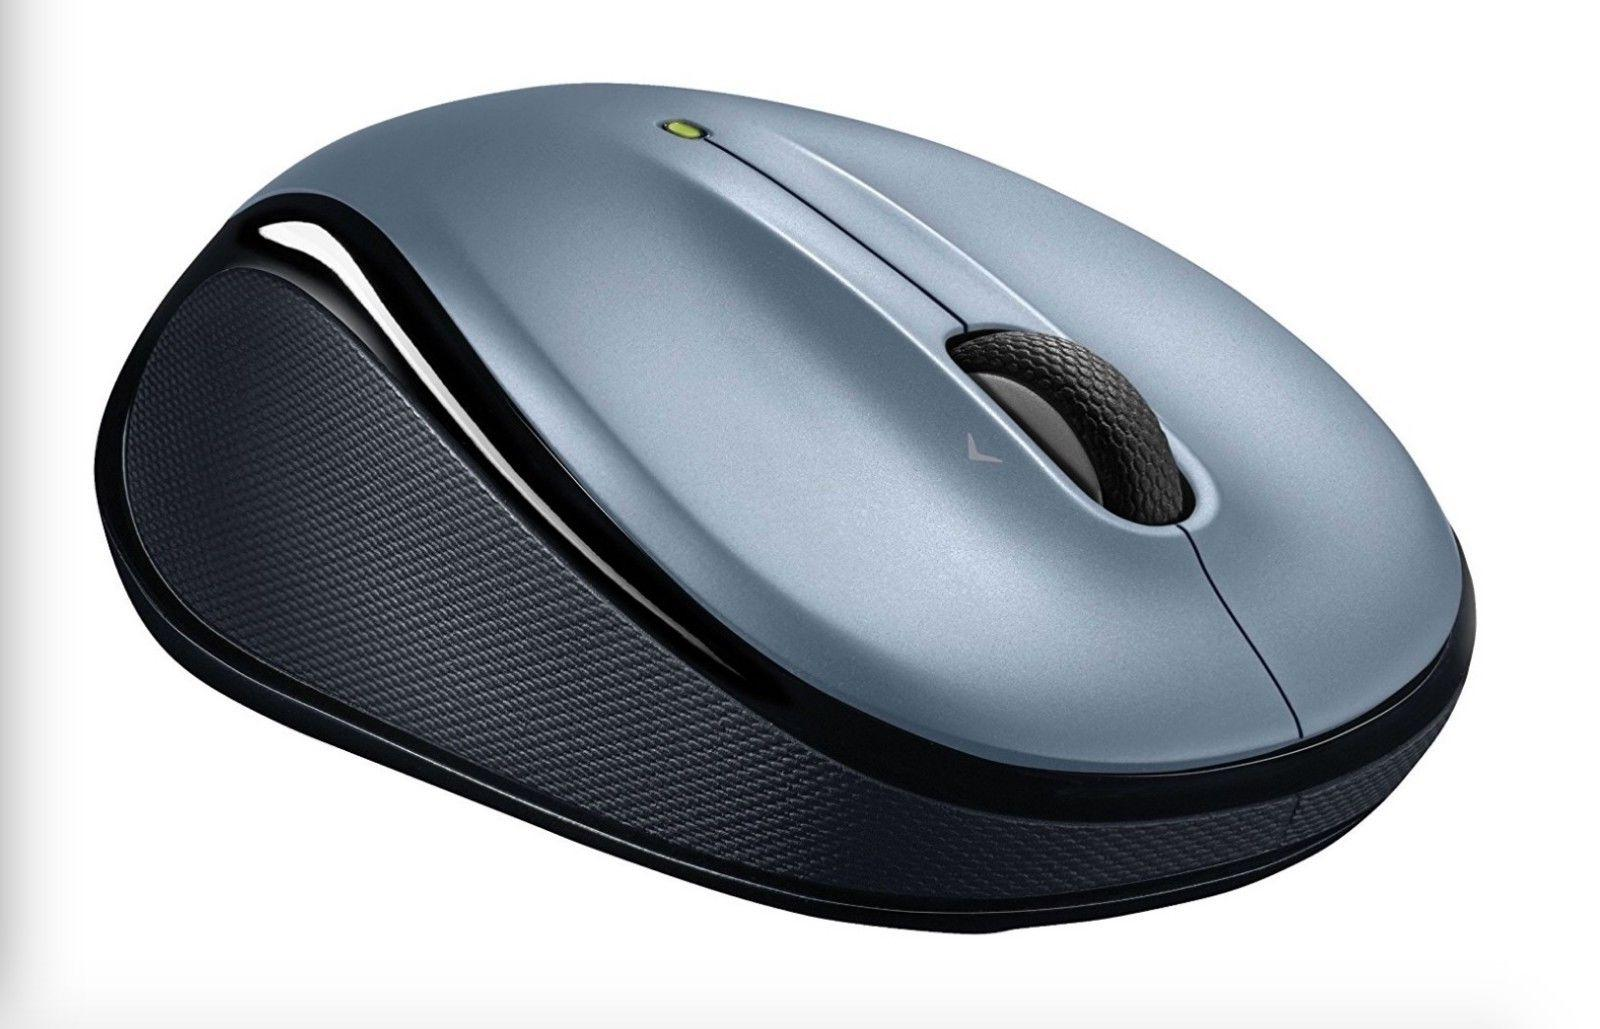 Logitech Wireless Mouse with Designed-For-Web